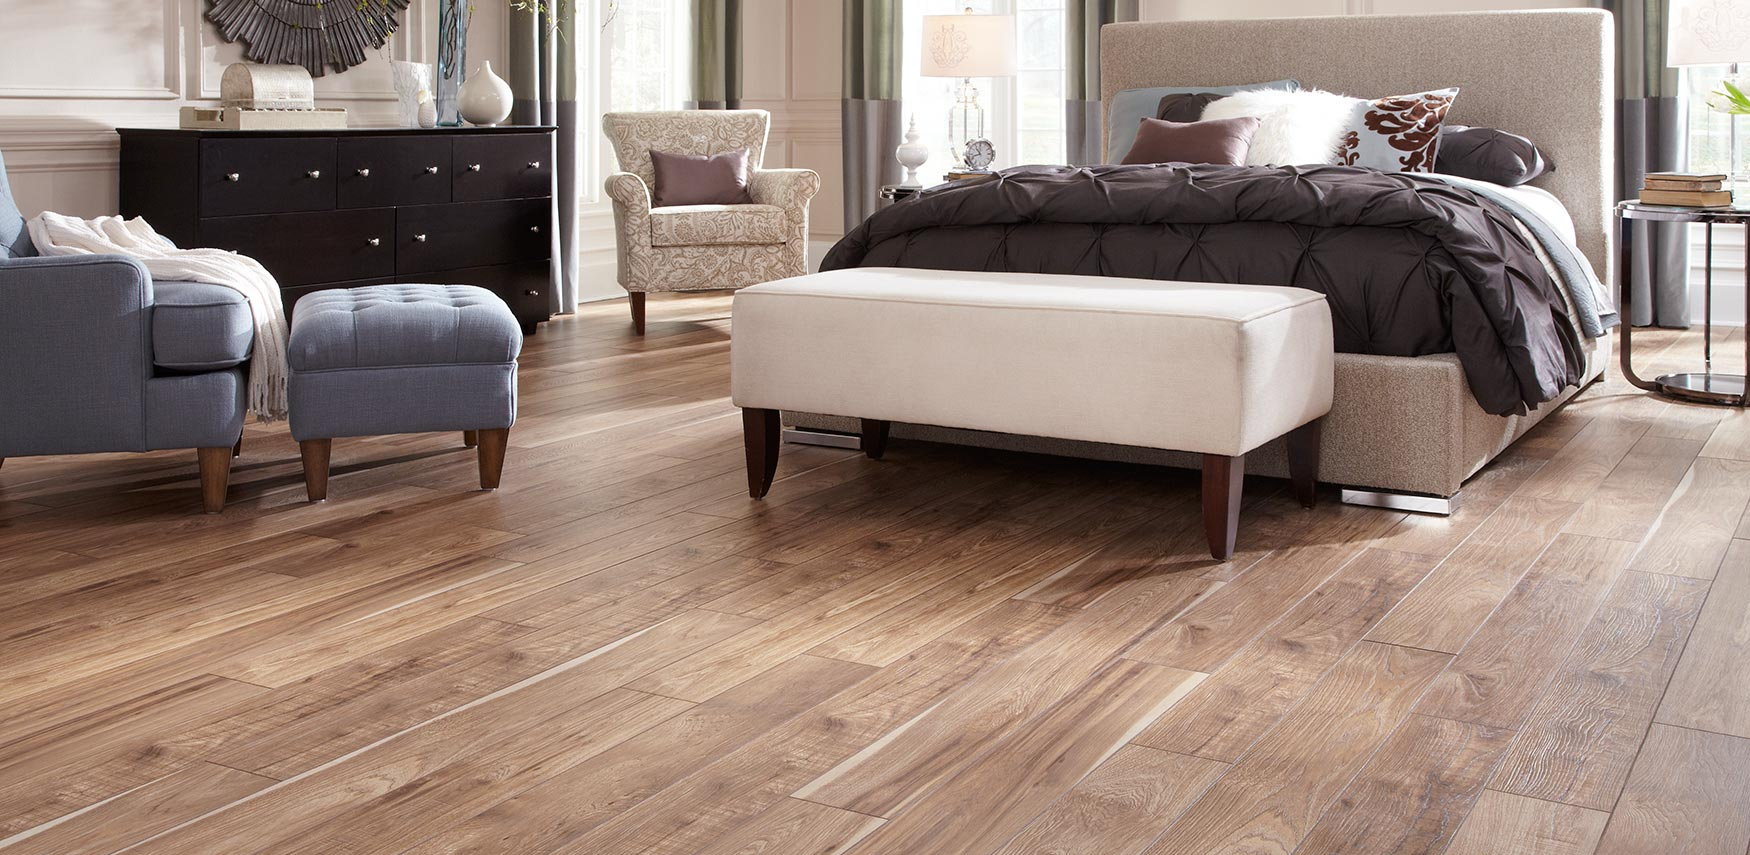 Superior Quality Luxury Vinyl Planks for your Home